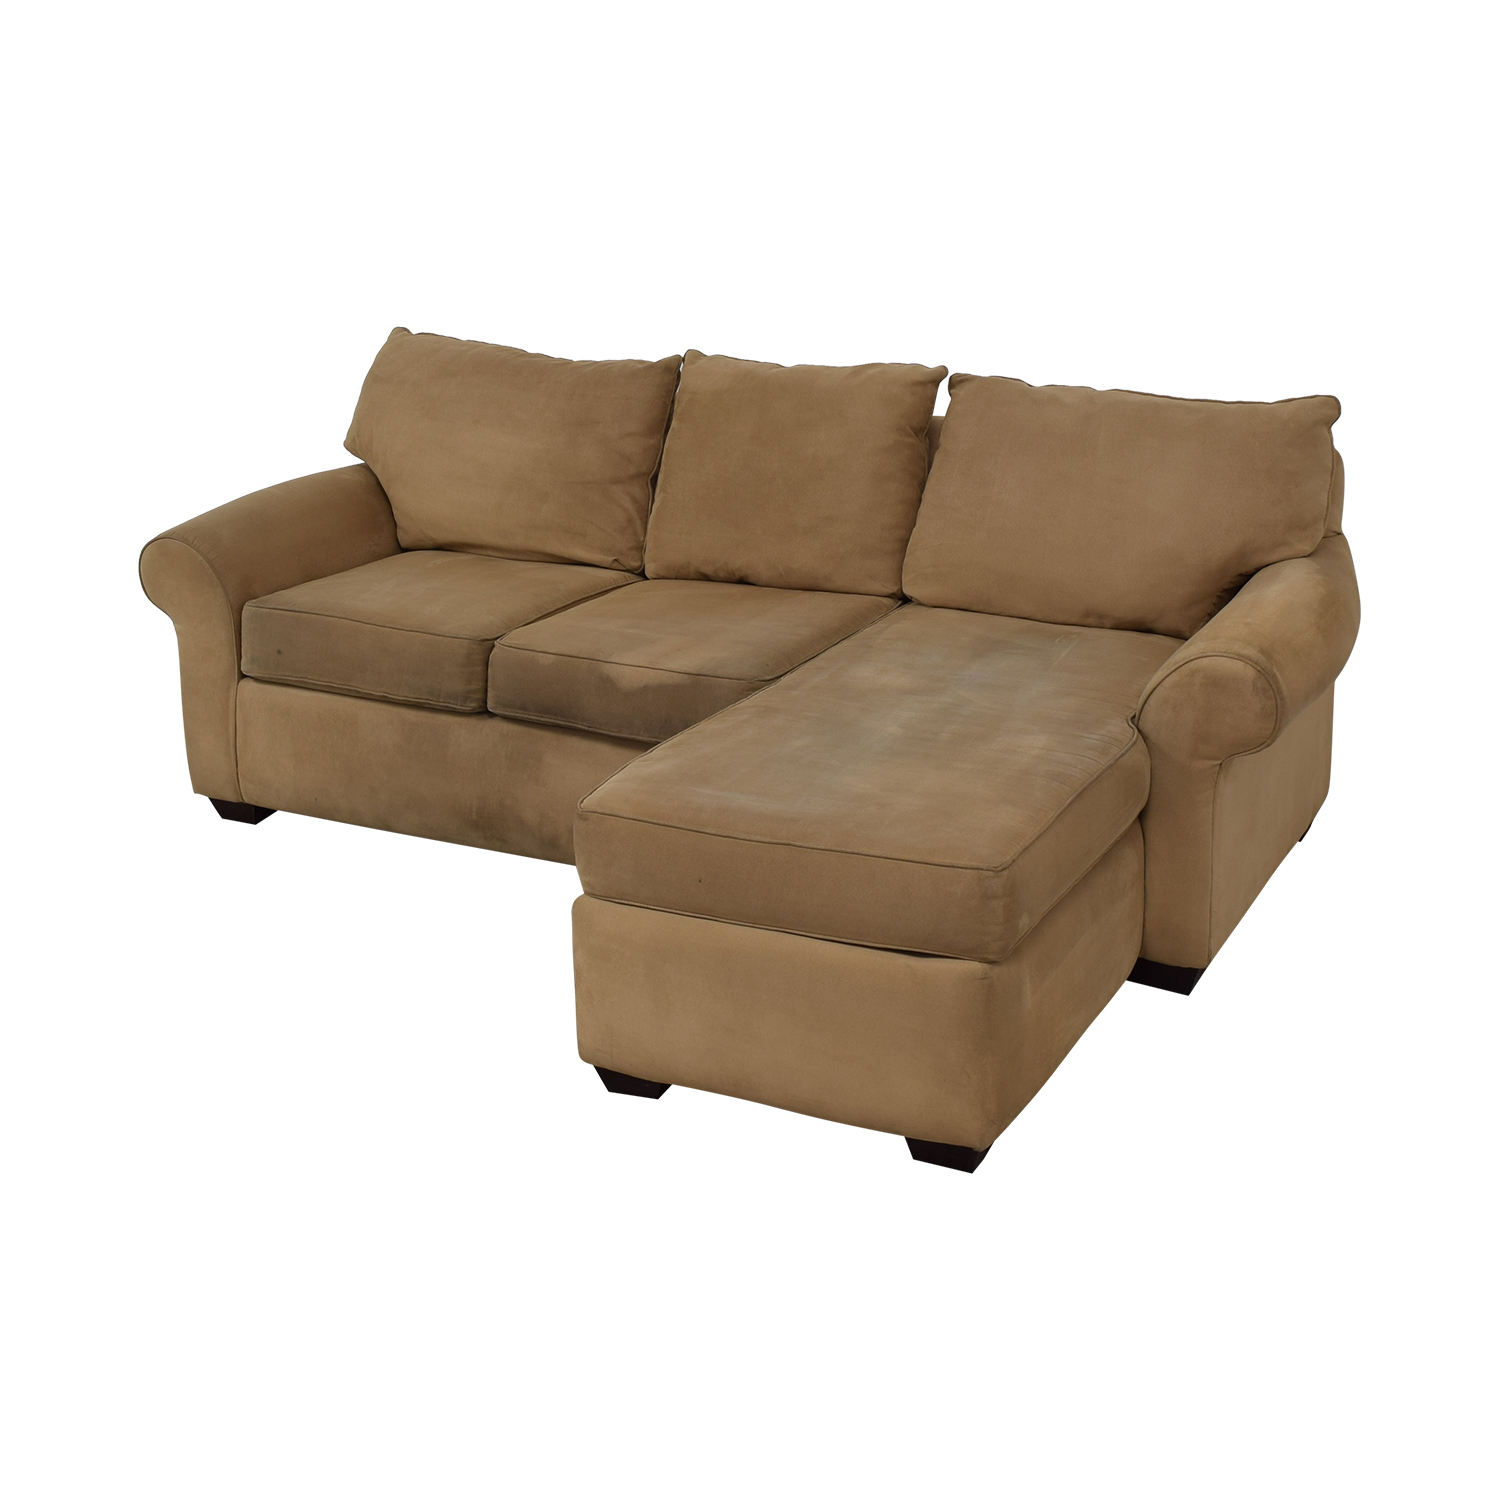 60 Off Sectional Right Side Chaise Sofa Sofas